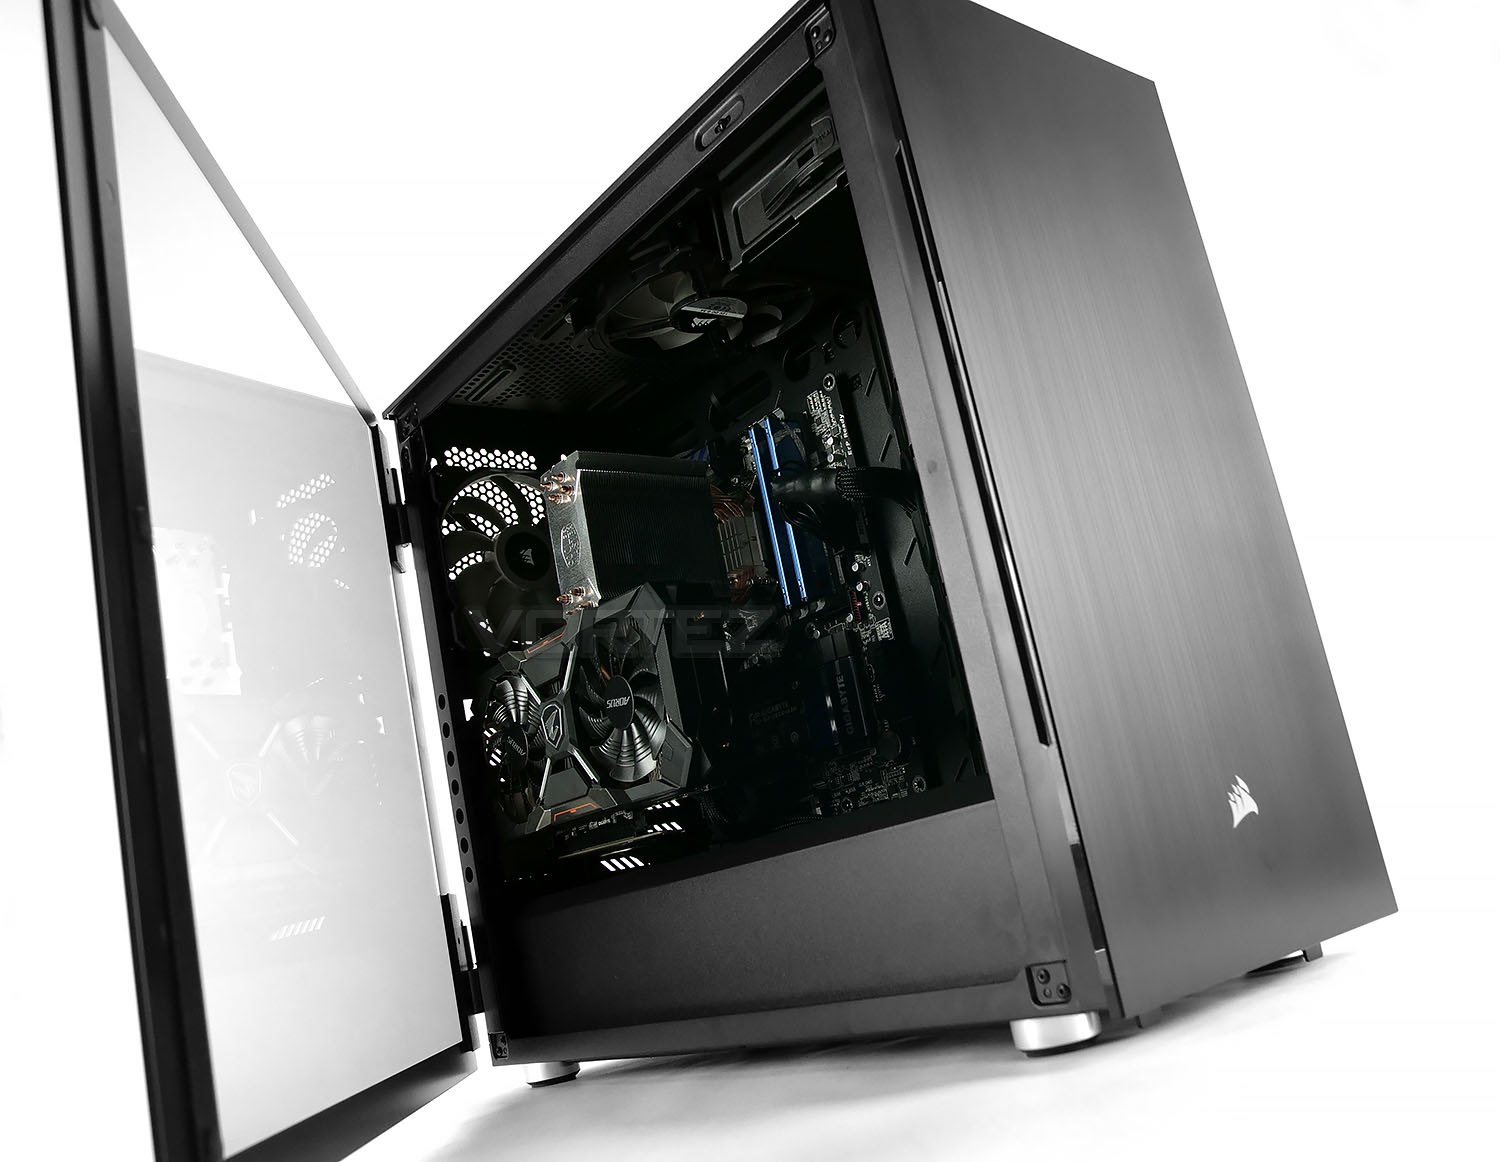 corsair_carbide_series_678c_review_intro.jpg